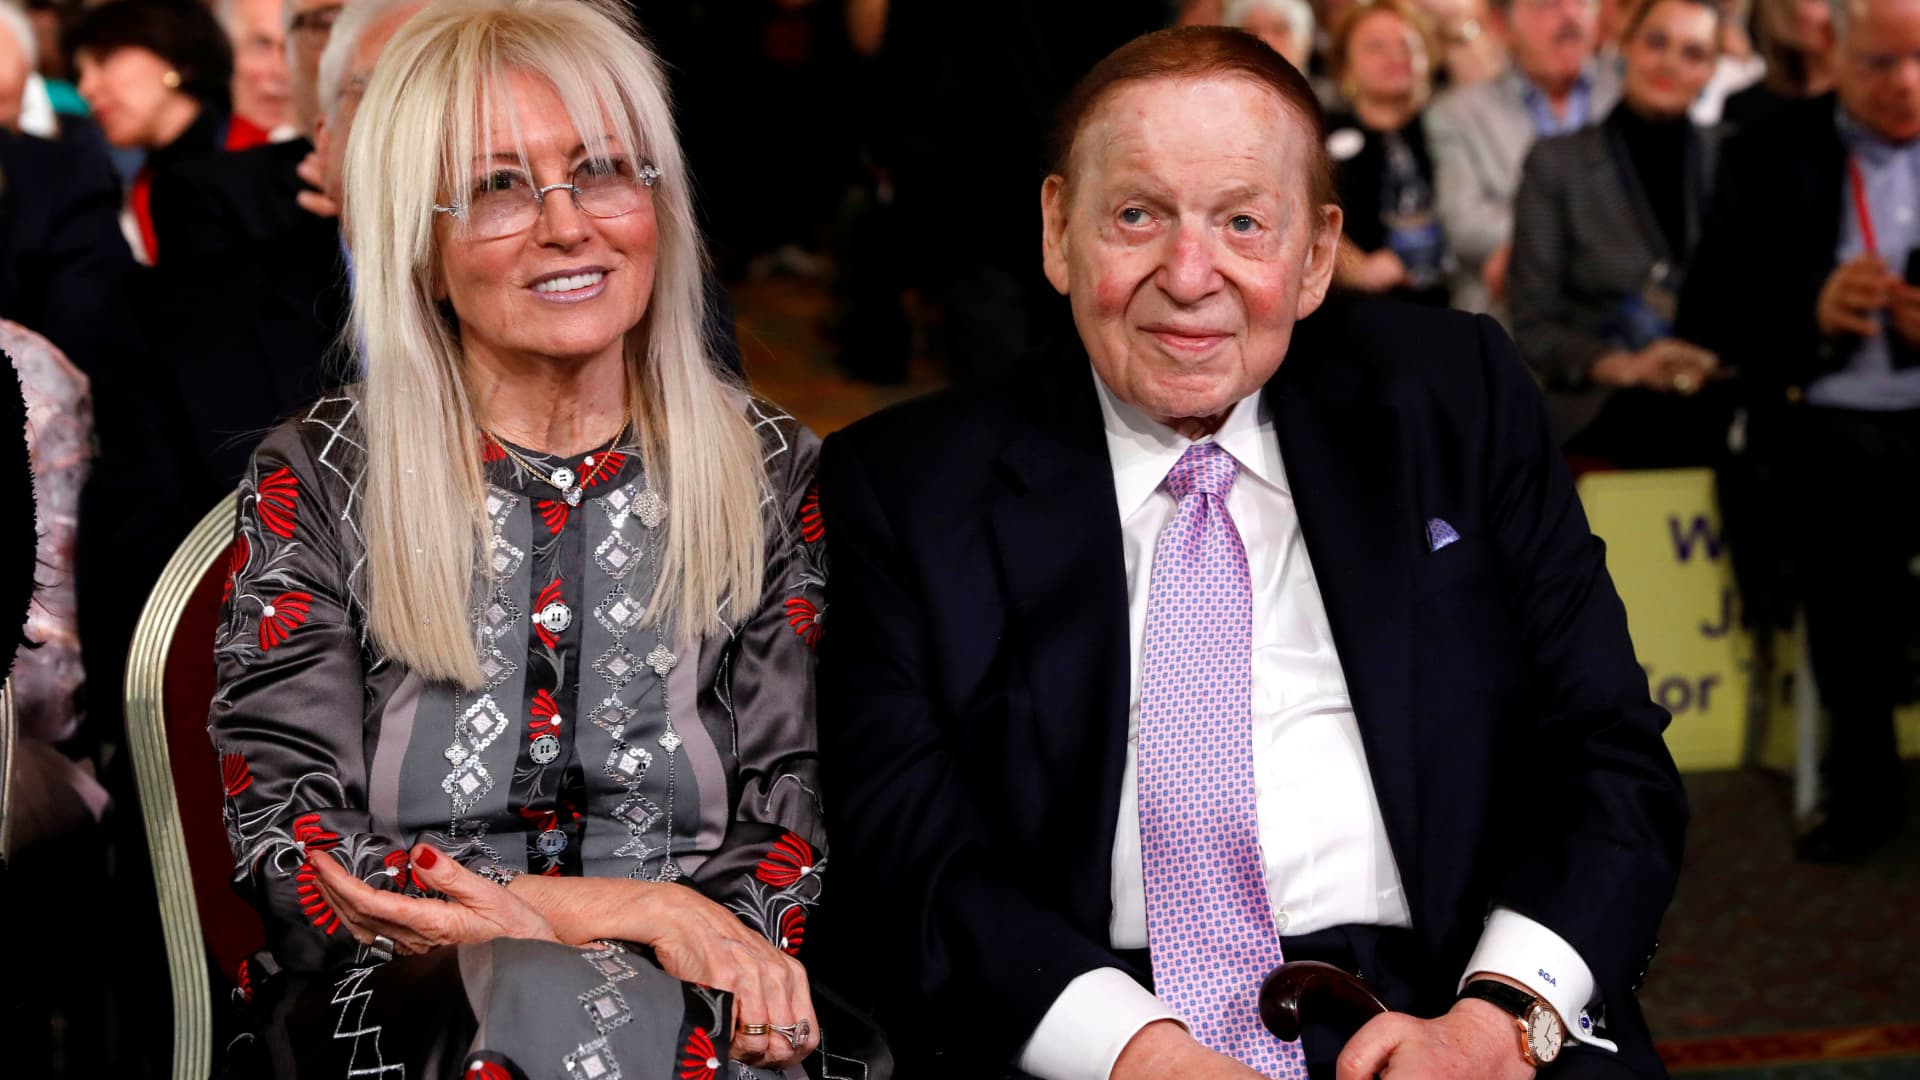 Casino magnate Sheldon Adelson and his wife Miriam listen to U.S. President Donald Trump address the Republican Jewish Coalition 2019 Annual Leadership Meeting in Las Vegas, Nevada, U.S., April 6, 2019.